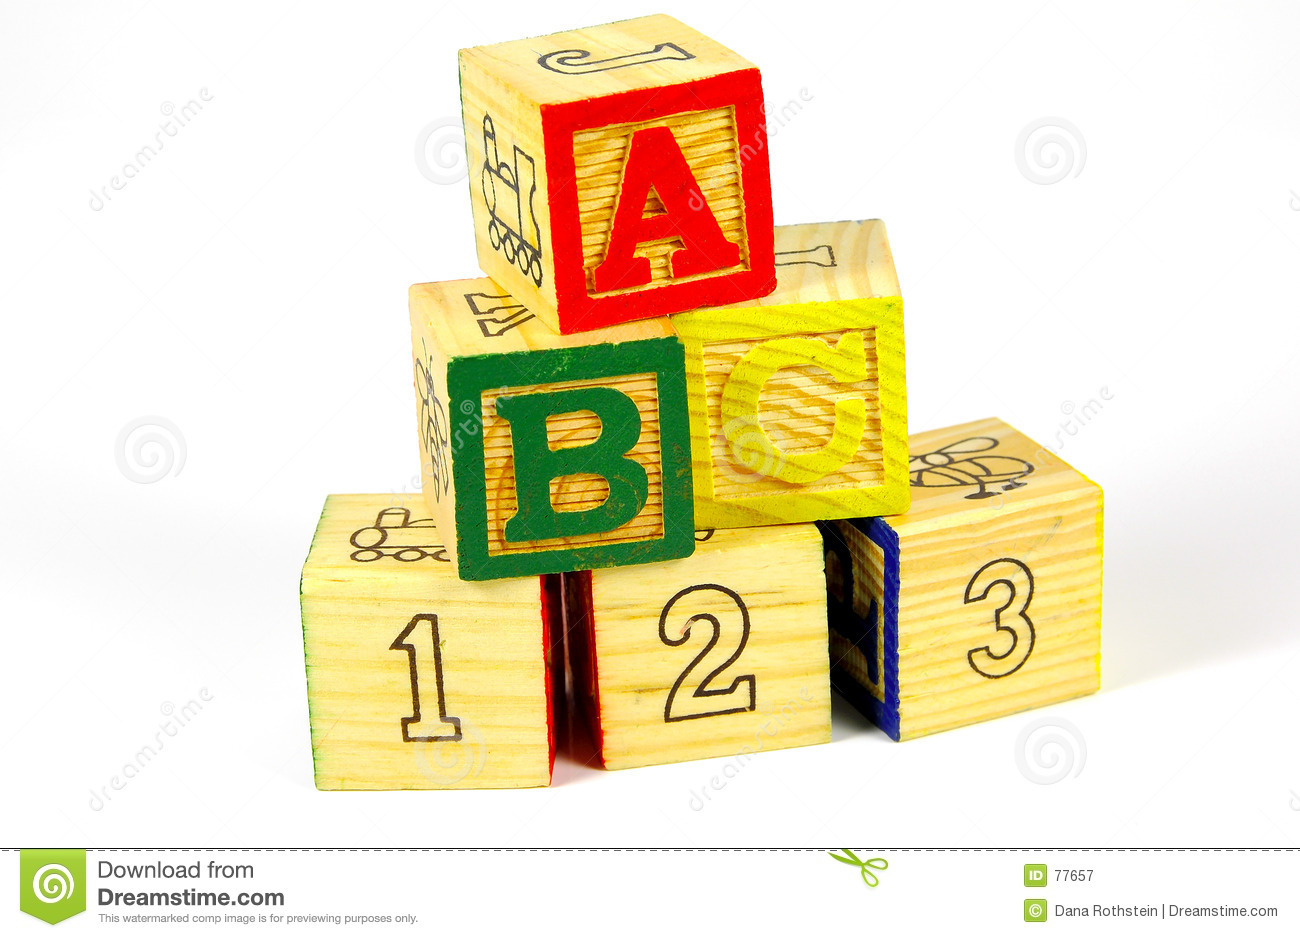 wooden blocks stock image image of preschool play. Black Bedroom Furniture Sets. Home Design Ideas